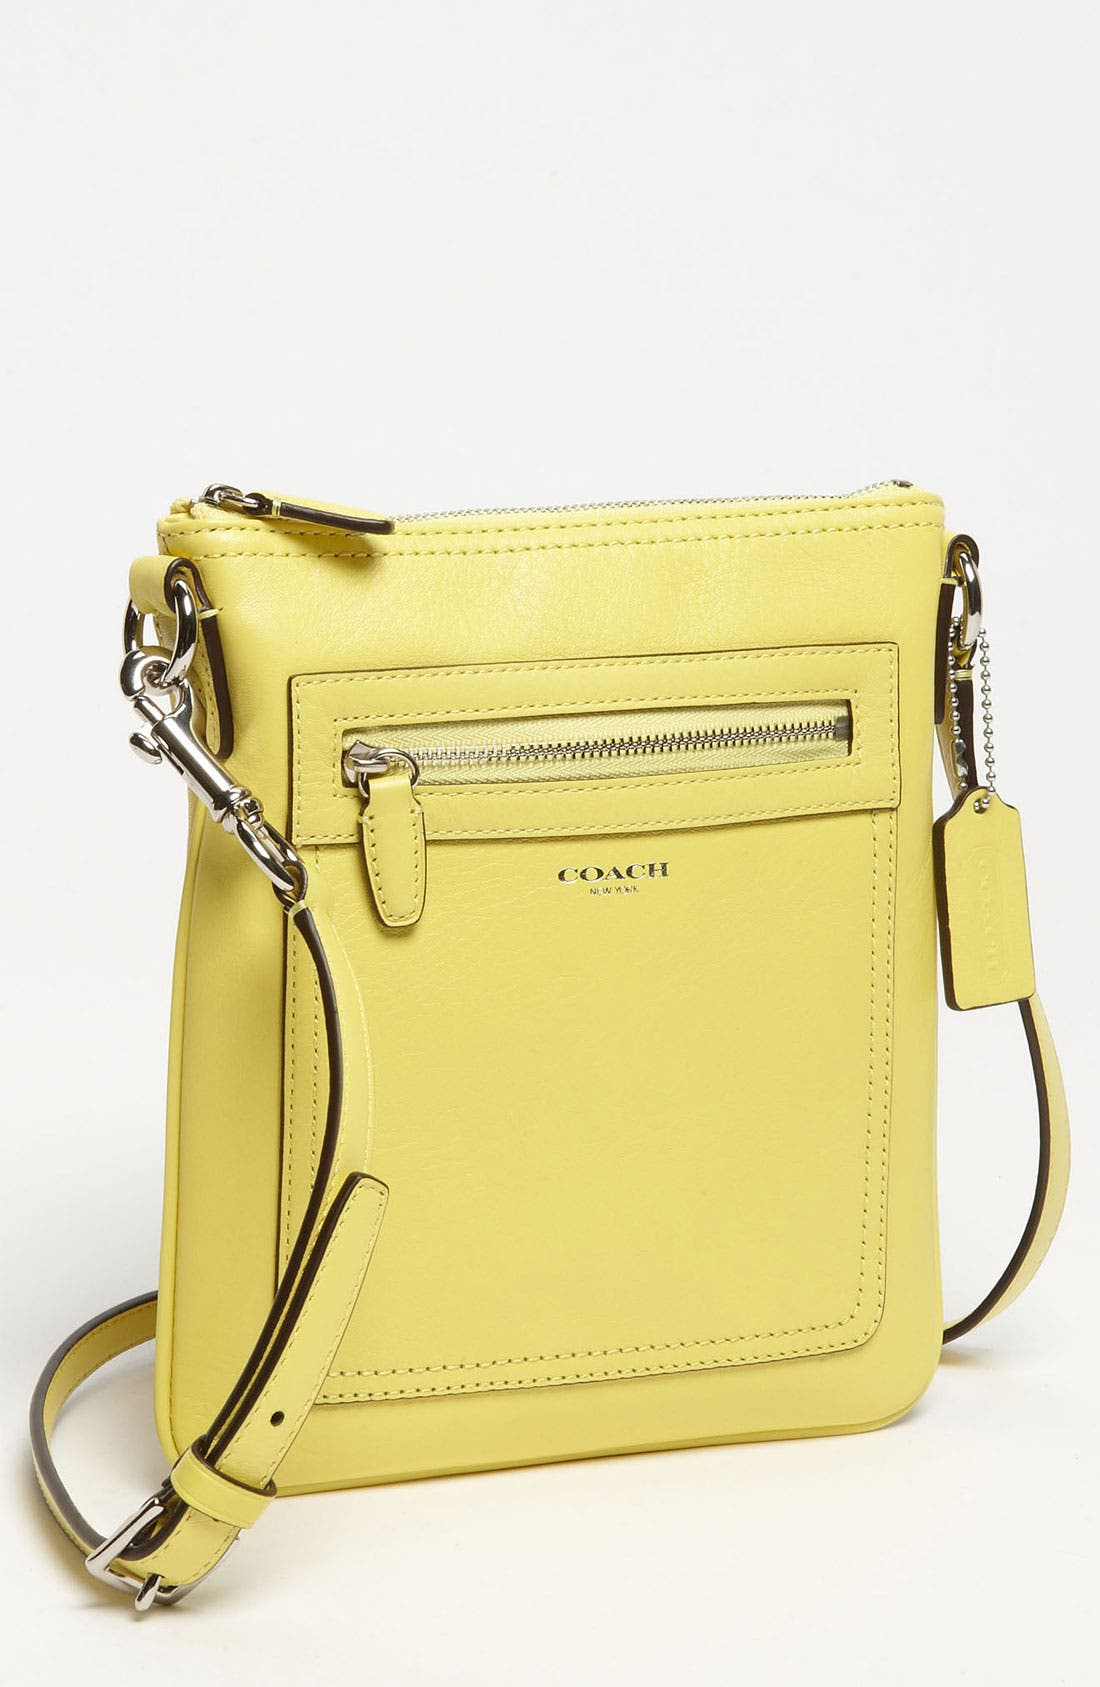 Alternate Image 1 Selected - COACH 'Legacy' Leather Crossbody Bag